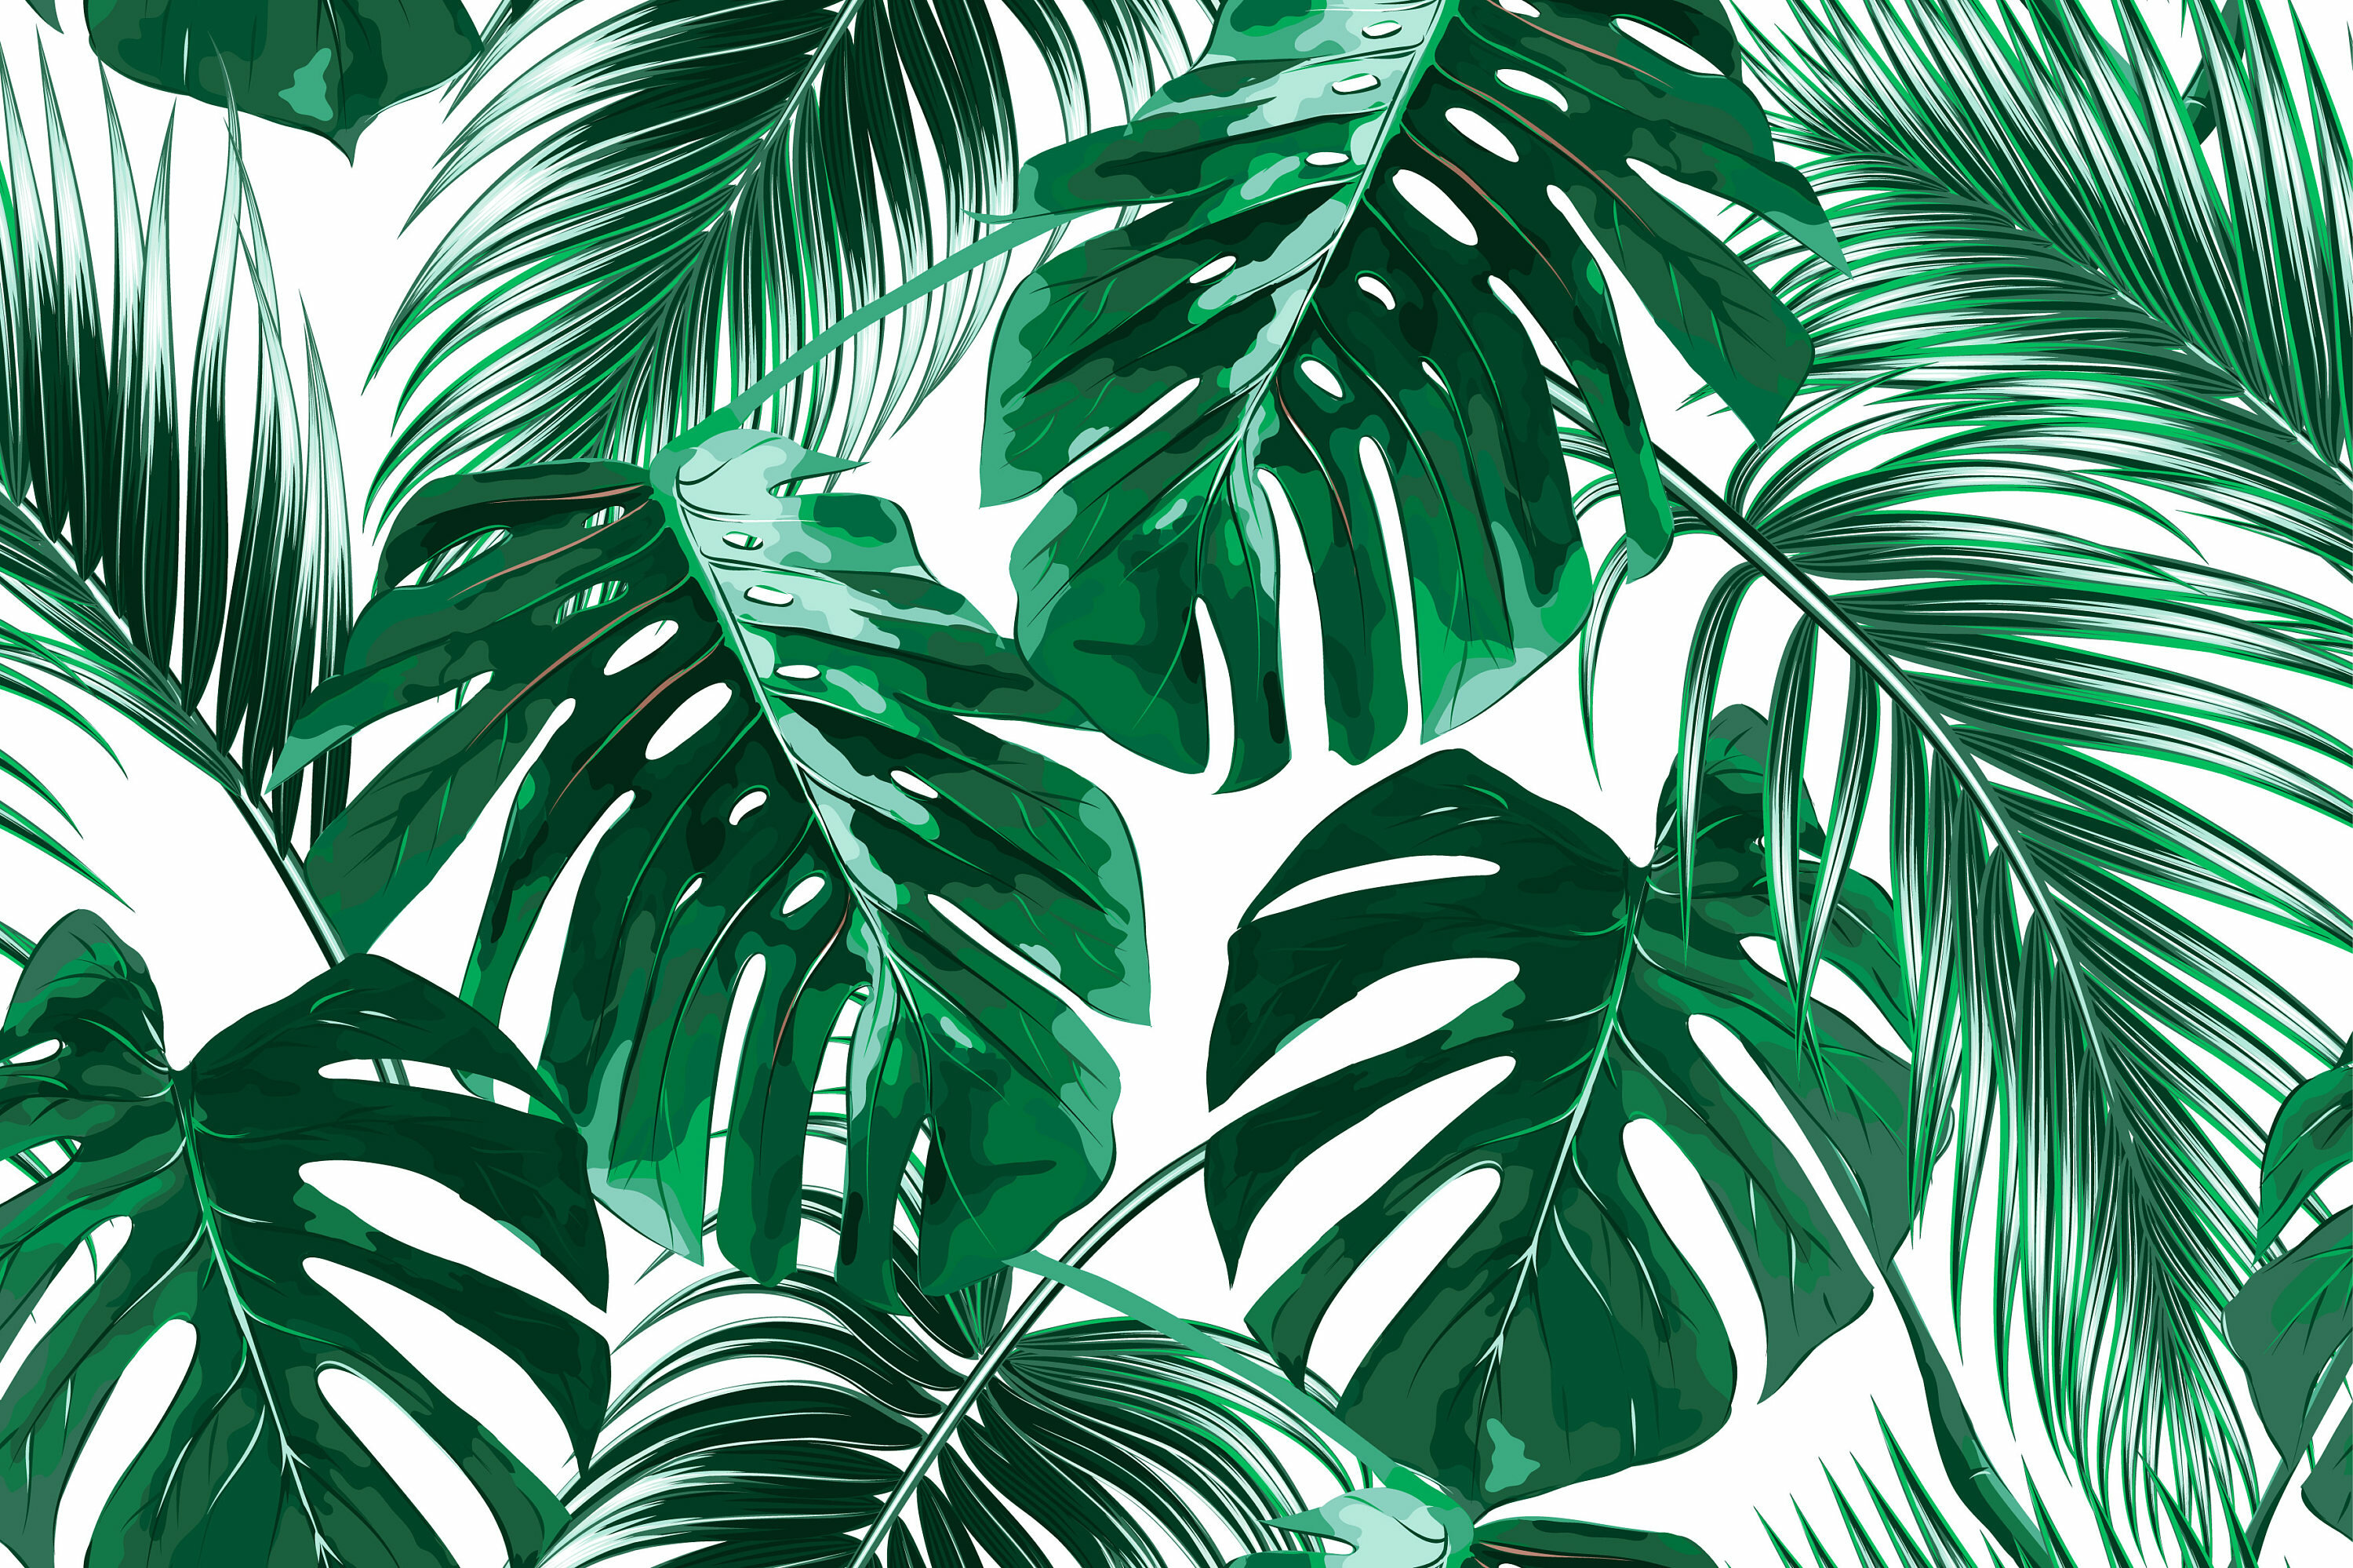 Bay Isle Home Agnon Removable Tropical Palm Leaves 3 92 L X 75 W Peel And Stick Wallpaper Roll Wayfair Please contact us if you want to publish a tropical leaves wallpaper on our site. agnon removable tropical palm leaves 3 92 l x 75 w peel and stick wallpaper roll